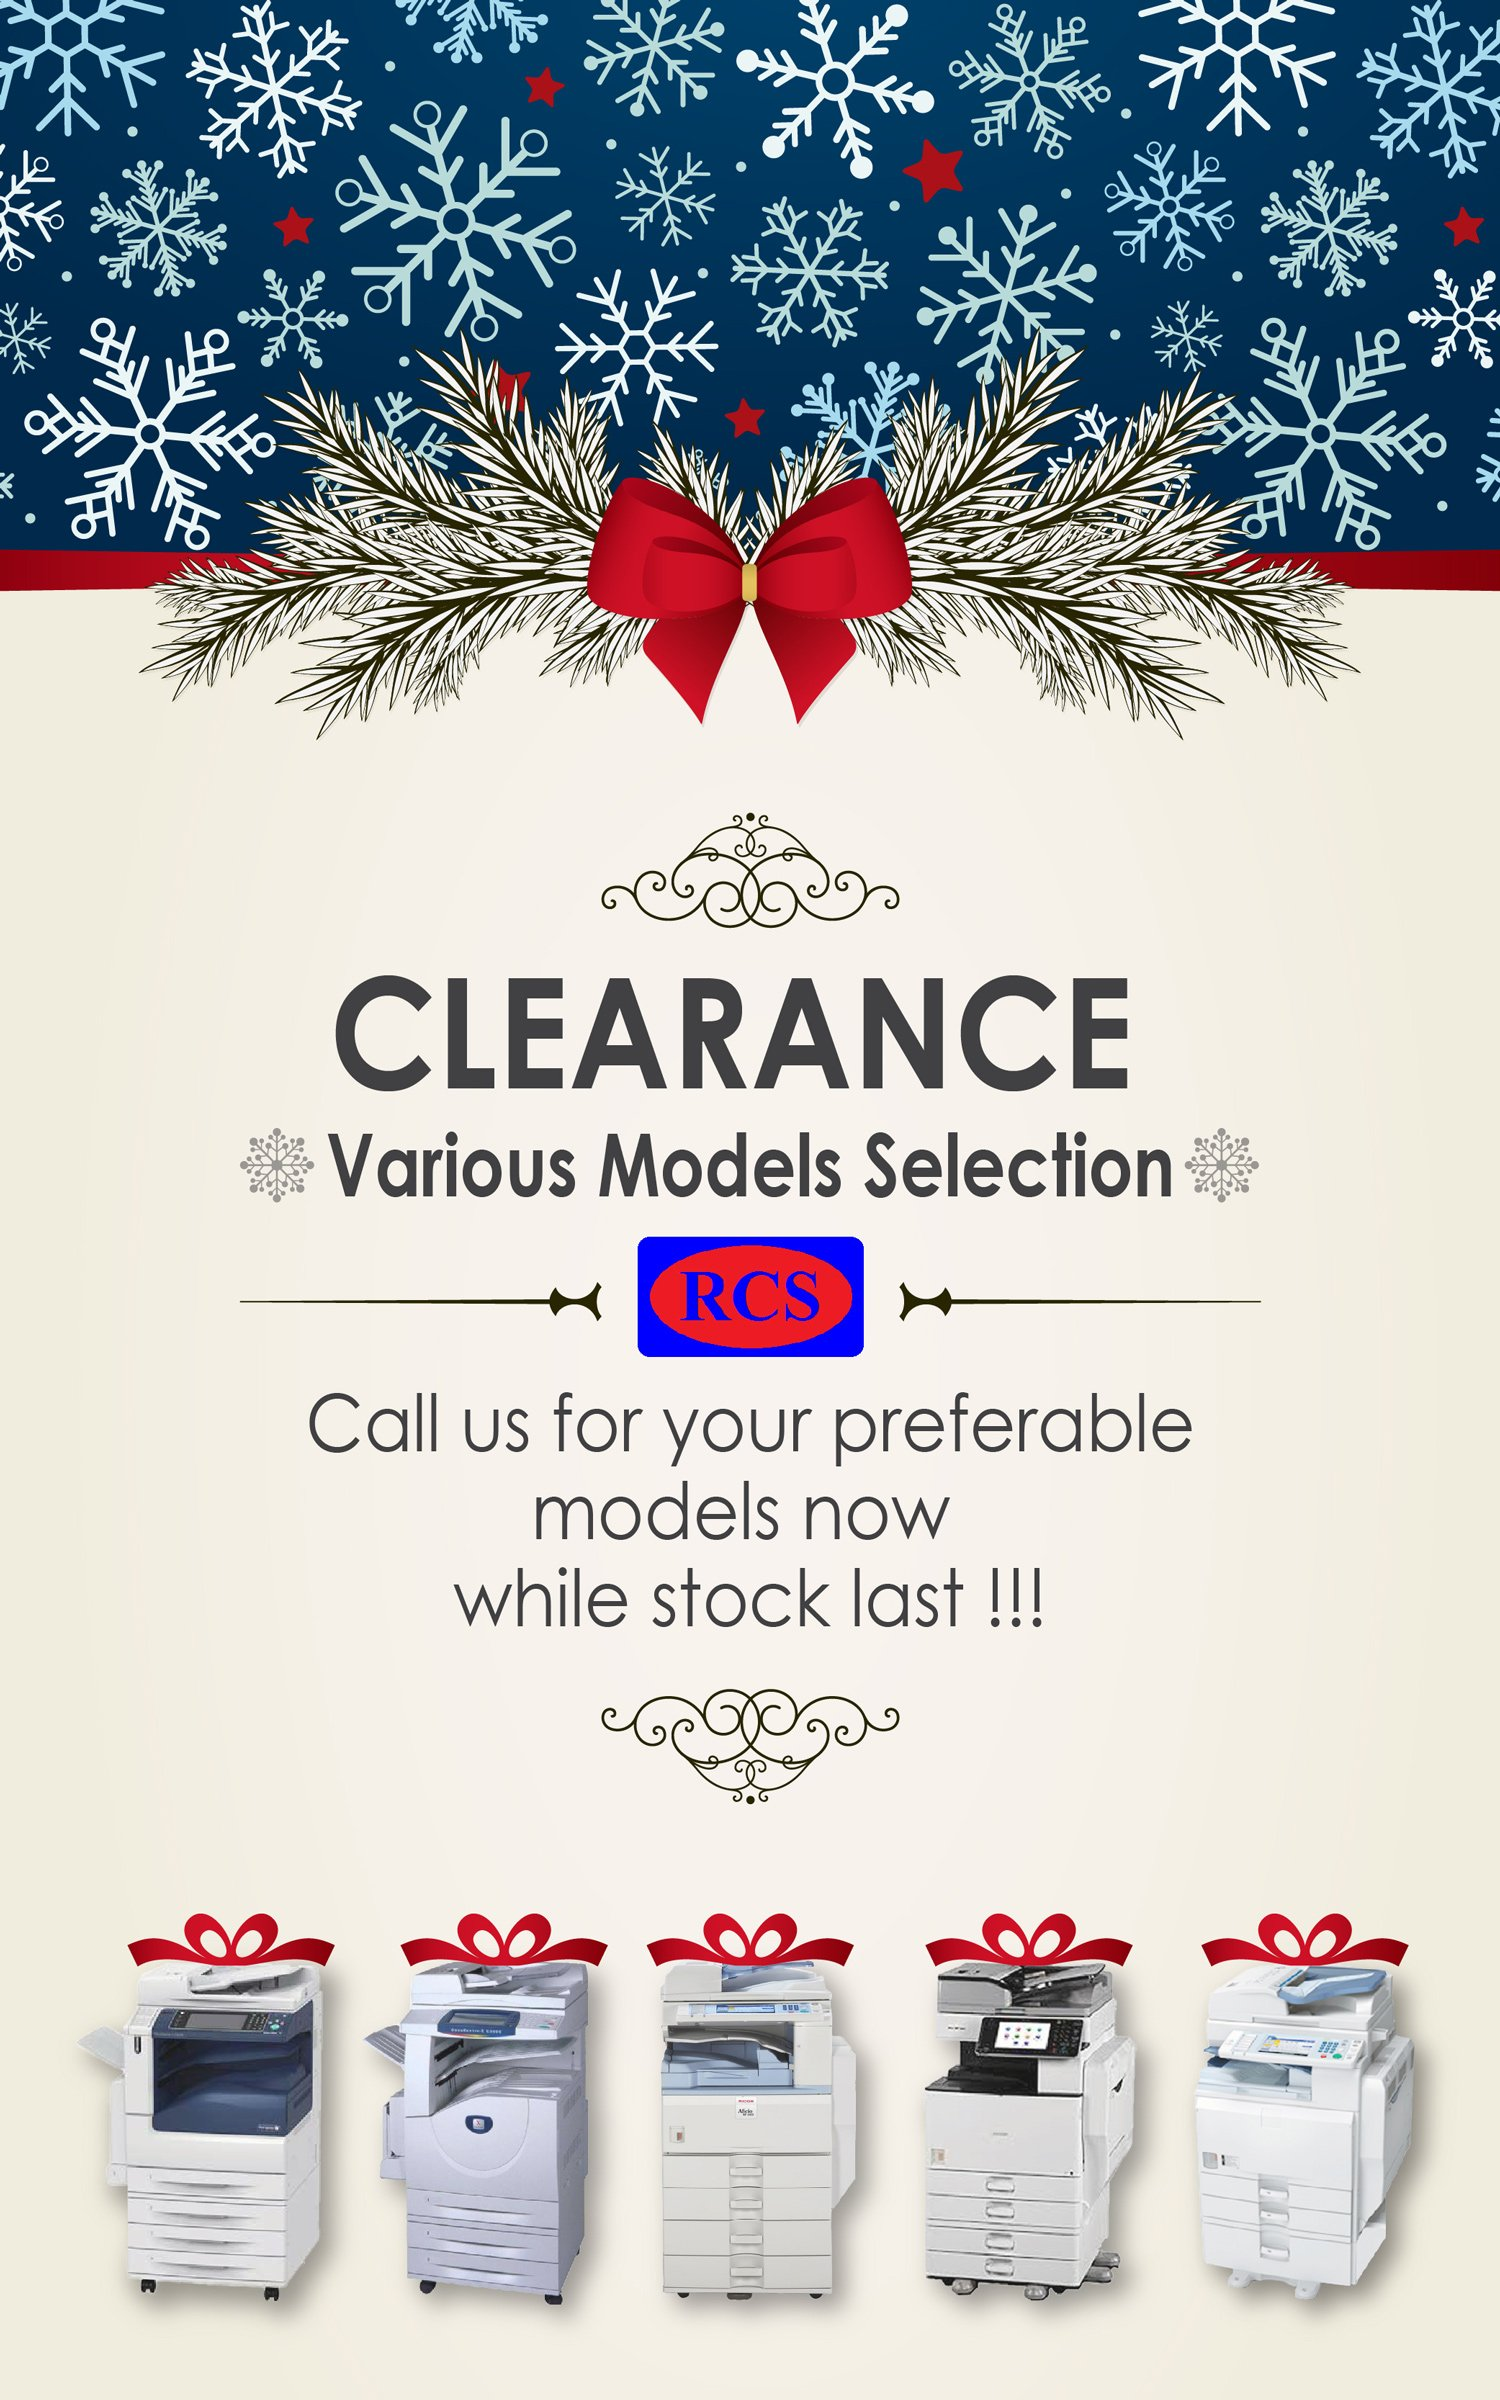 CHRISTMAS CLEARANCE!! RICOH/FUJI XEROX/CANON/MINOLTA 220V RECONDITIONED COPIER WHOLESALE